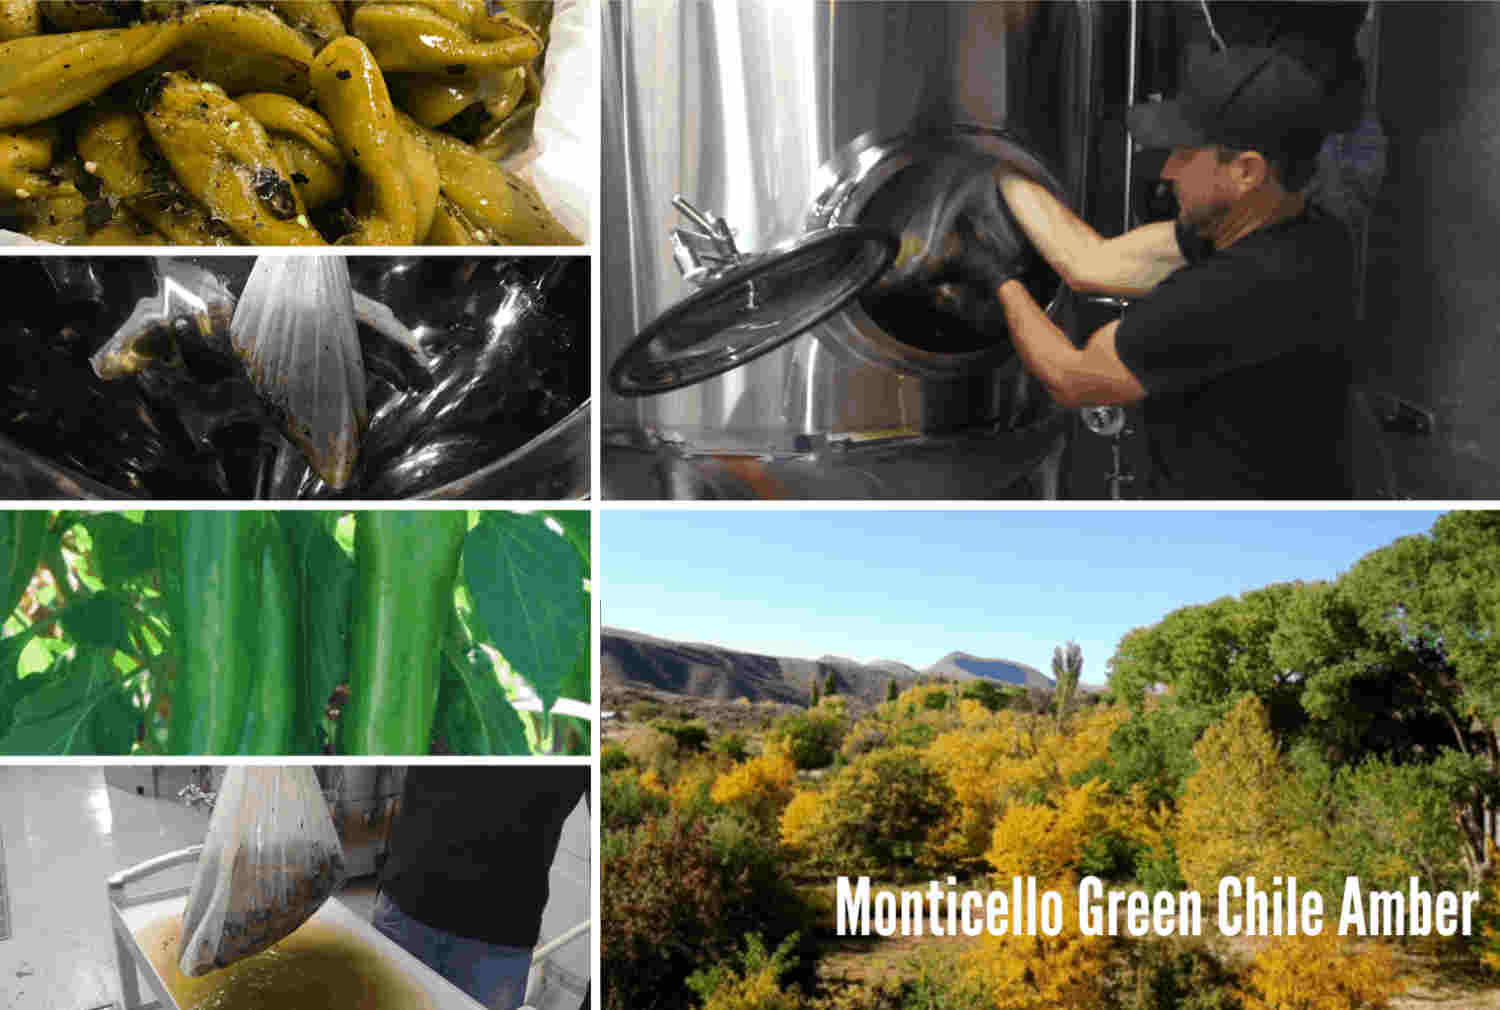 Monticello Green Chile Amber beer release at TorC Brewing